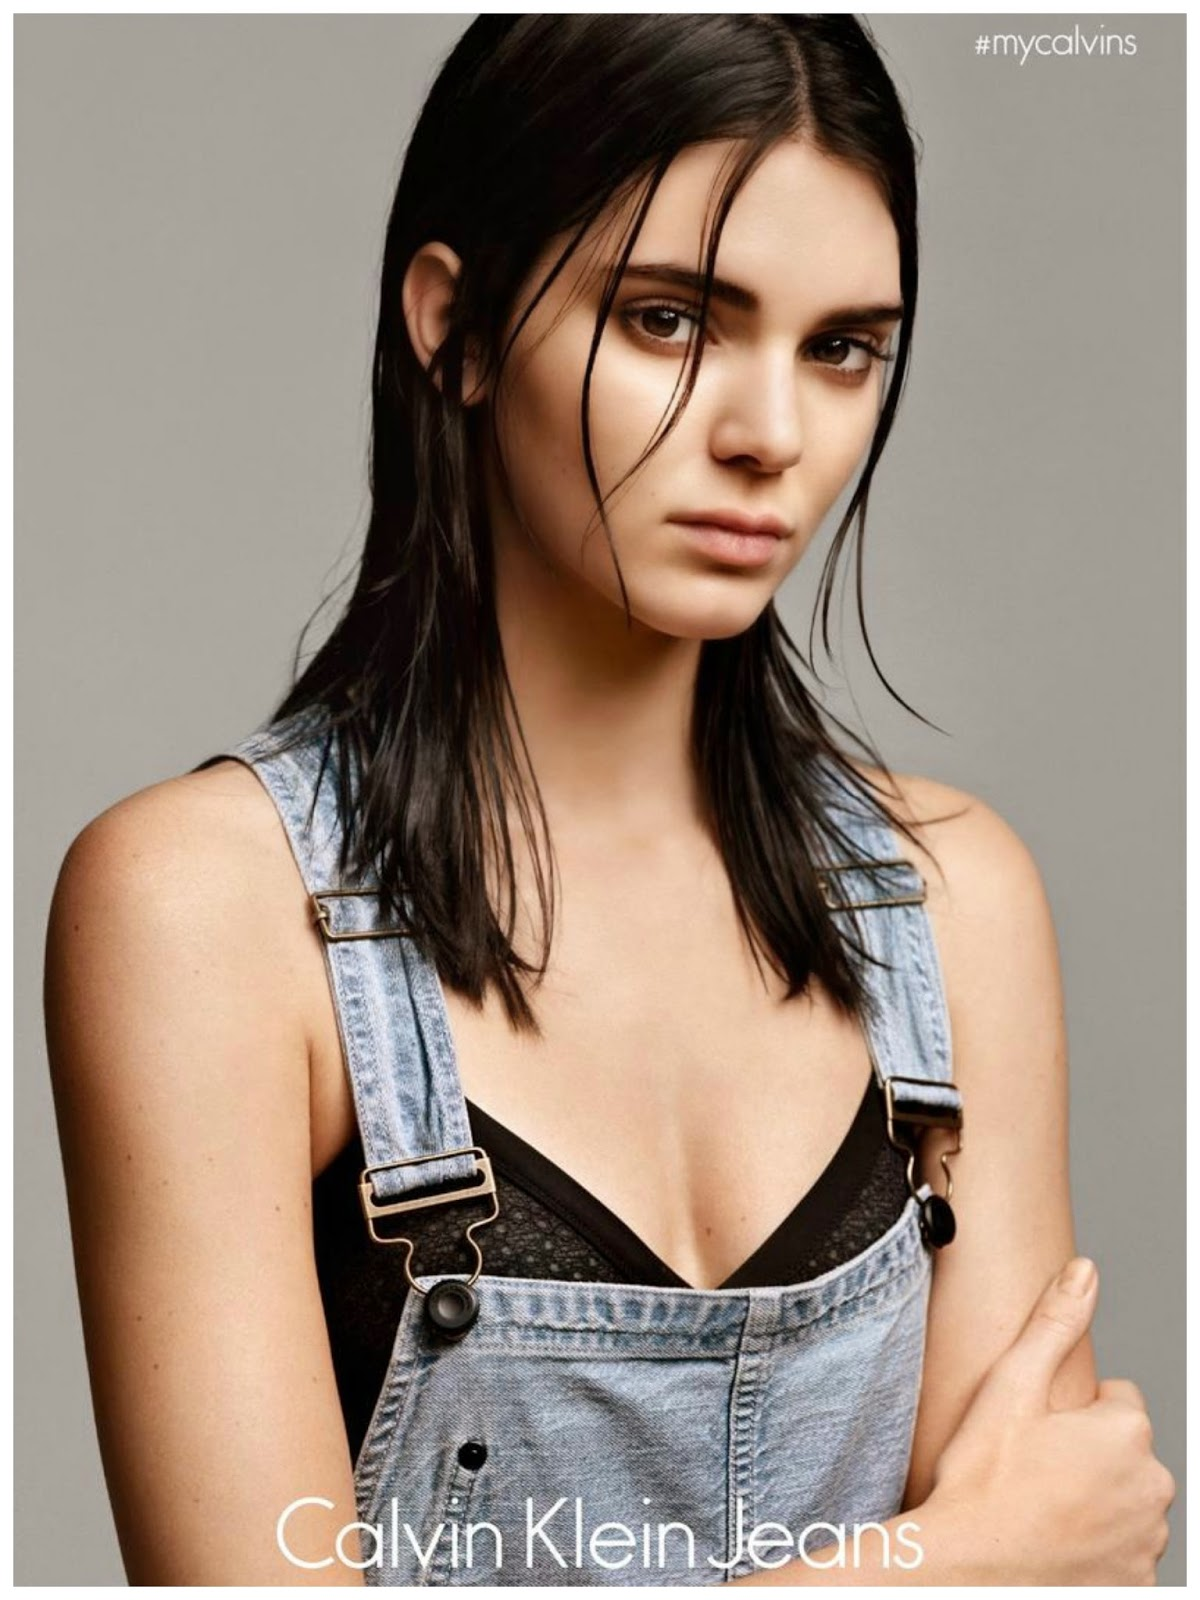 414042dae2 CALVIN KLEIN JEANS: KENDALL JENNER FOR #MYCALVINS - THE ENCHANTED ...